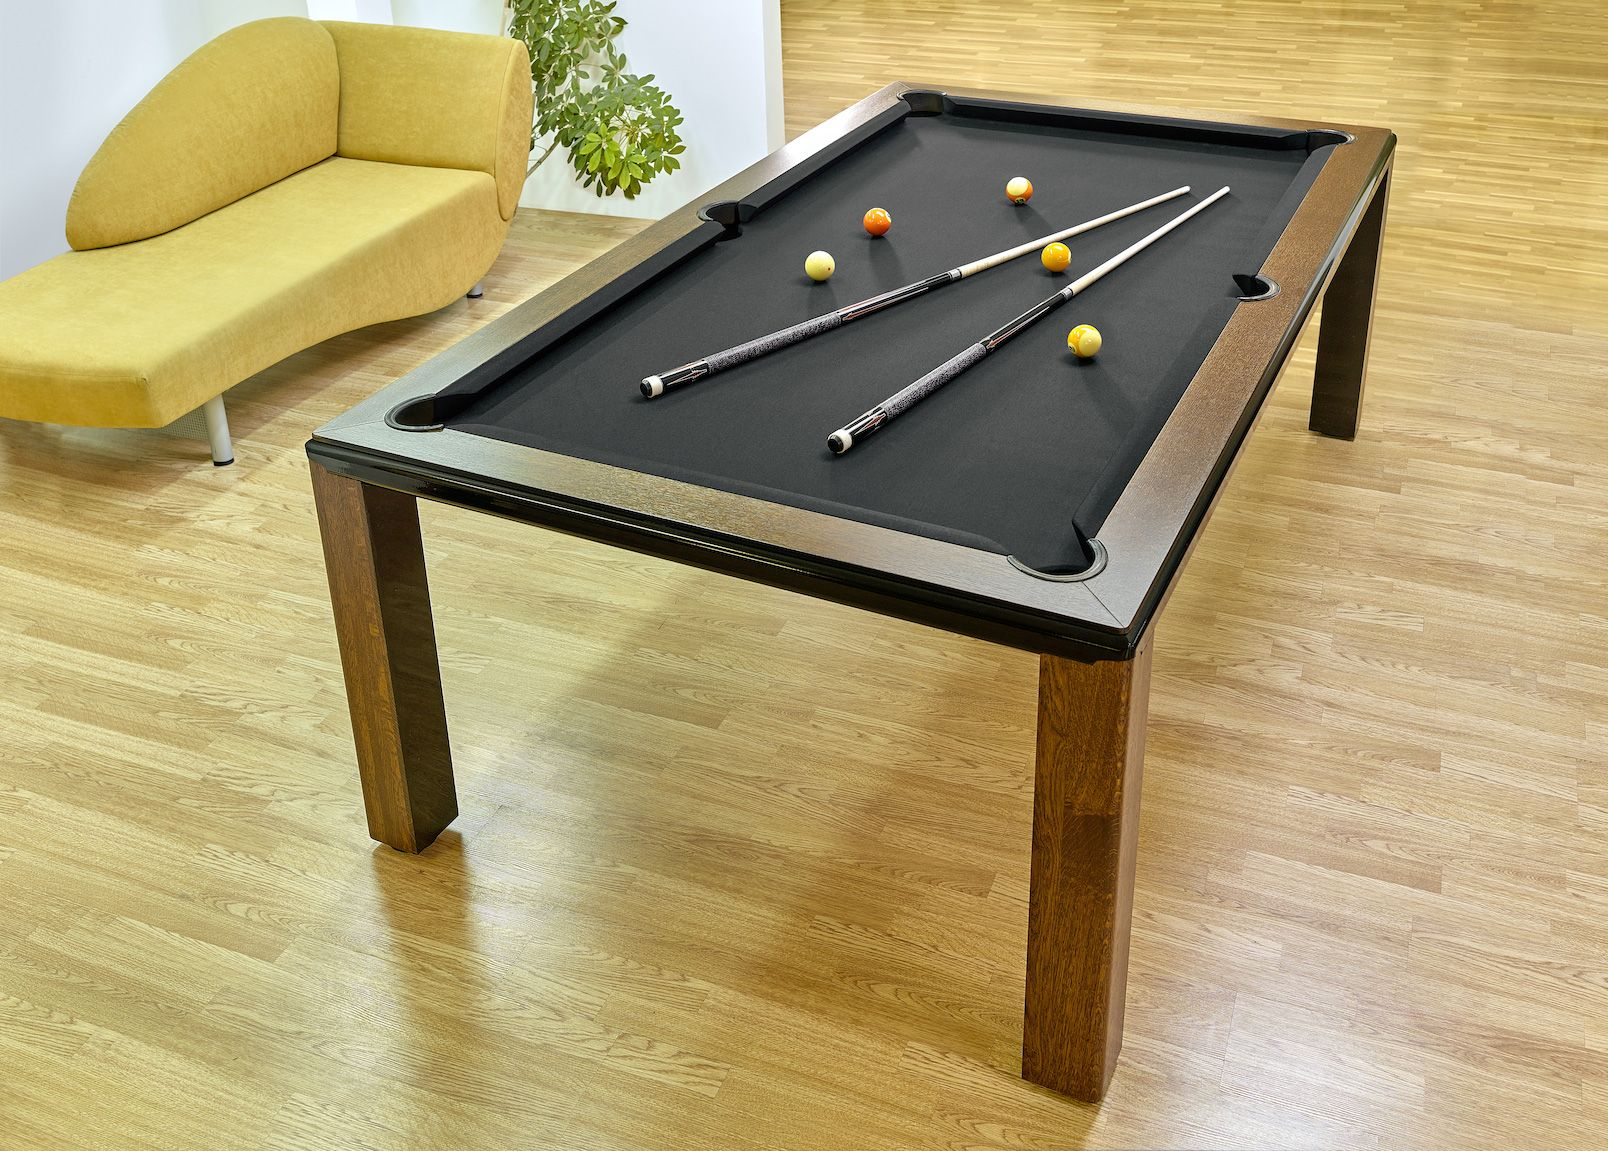 Convertible Table by Vision Billiards can be used as both a pool